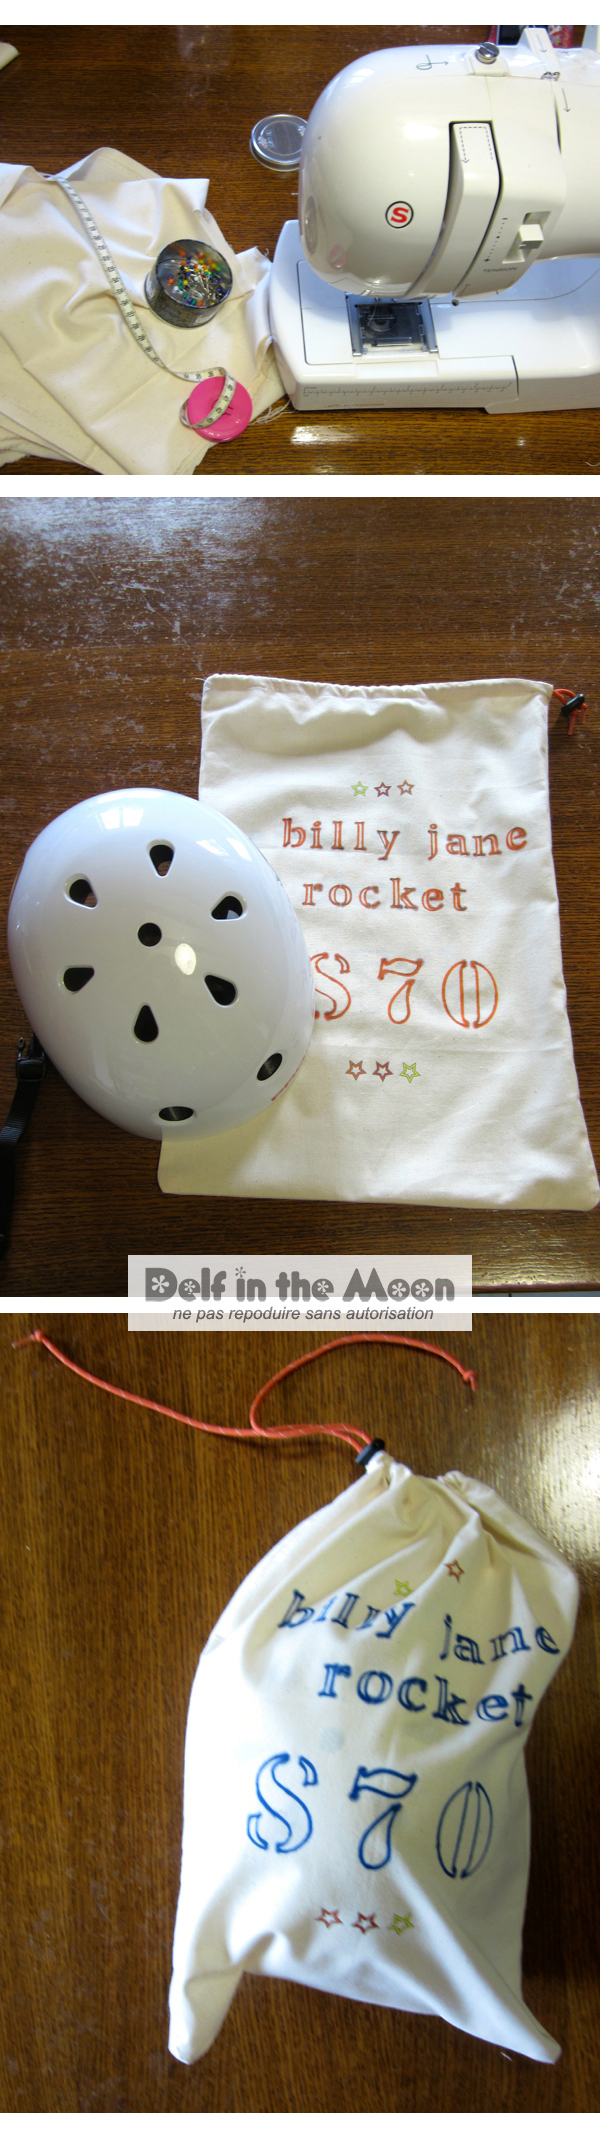 Helmett bag :  Billy Jane Rocket #S70